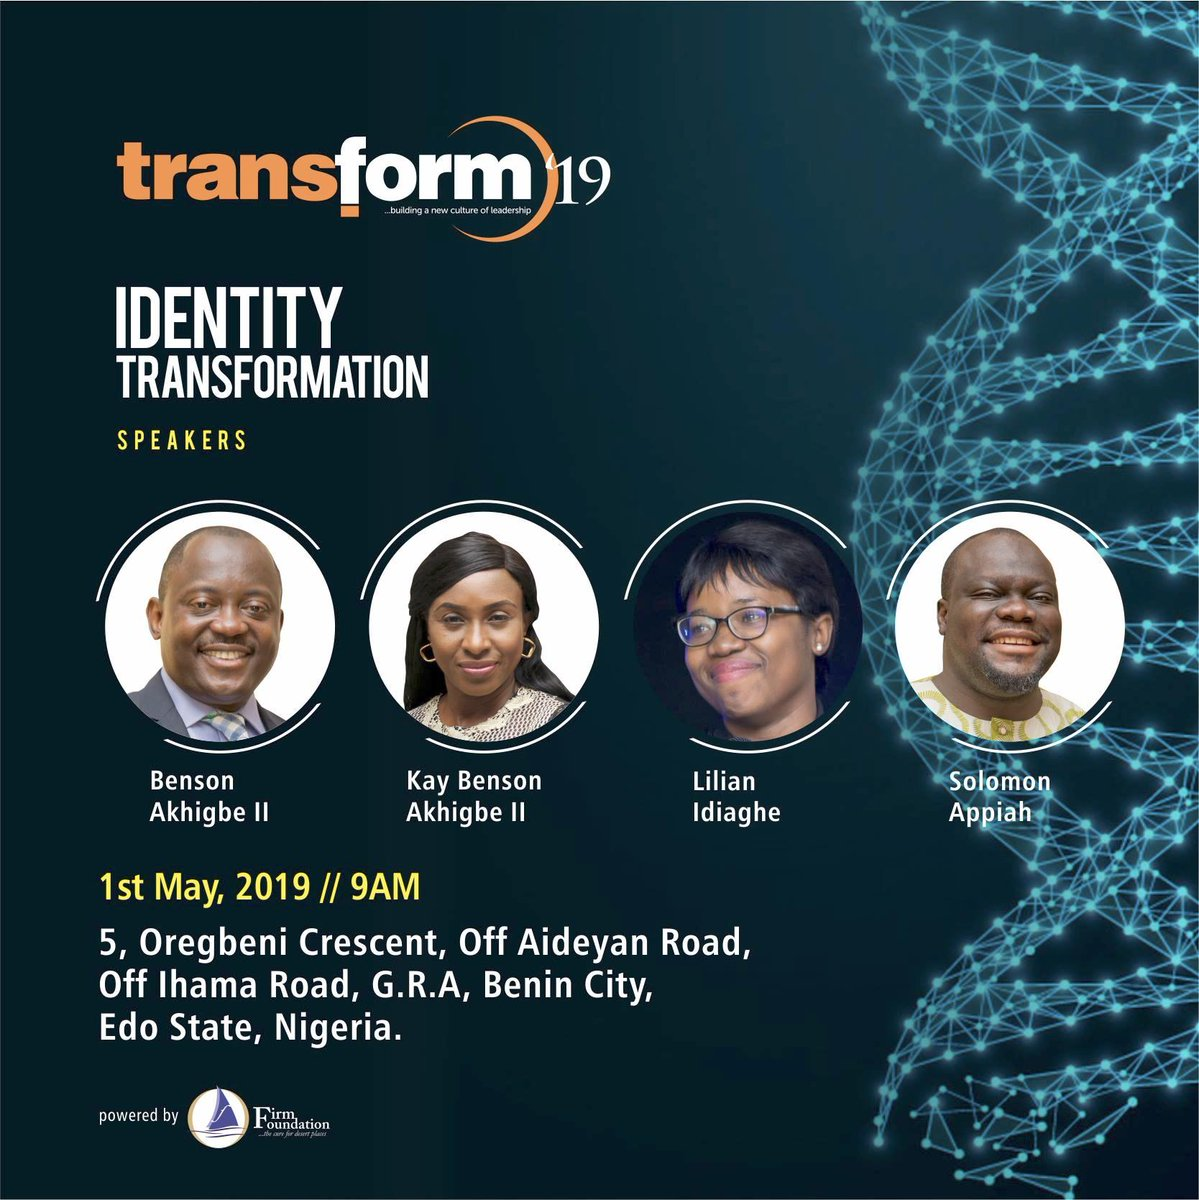 Will be teaching at @Transform_2019 hosted by the amazing @bensonakhigbe & @kay_akhigbe   @_firmfoundation is a cutting edge ministry relevant to their state ... positive transformation agents! Great place to be w/ a culture of honour & excellence. See you there!